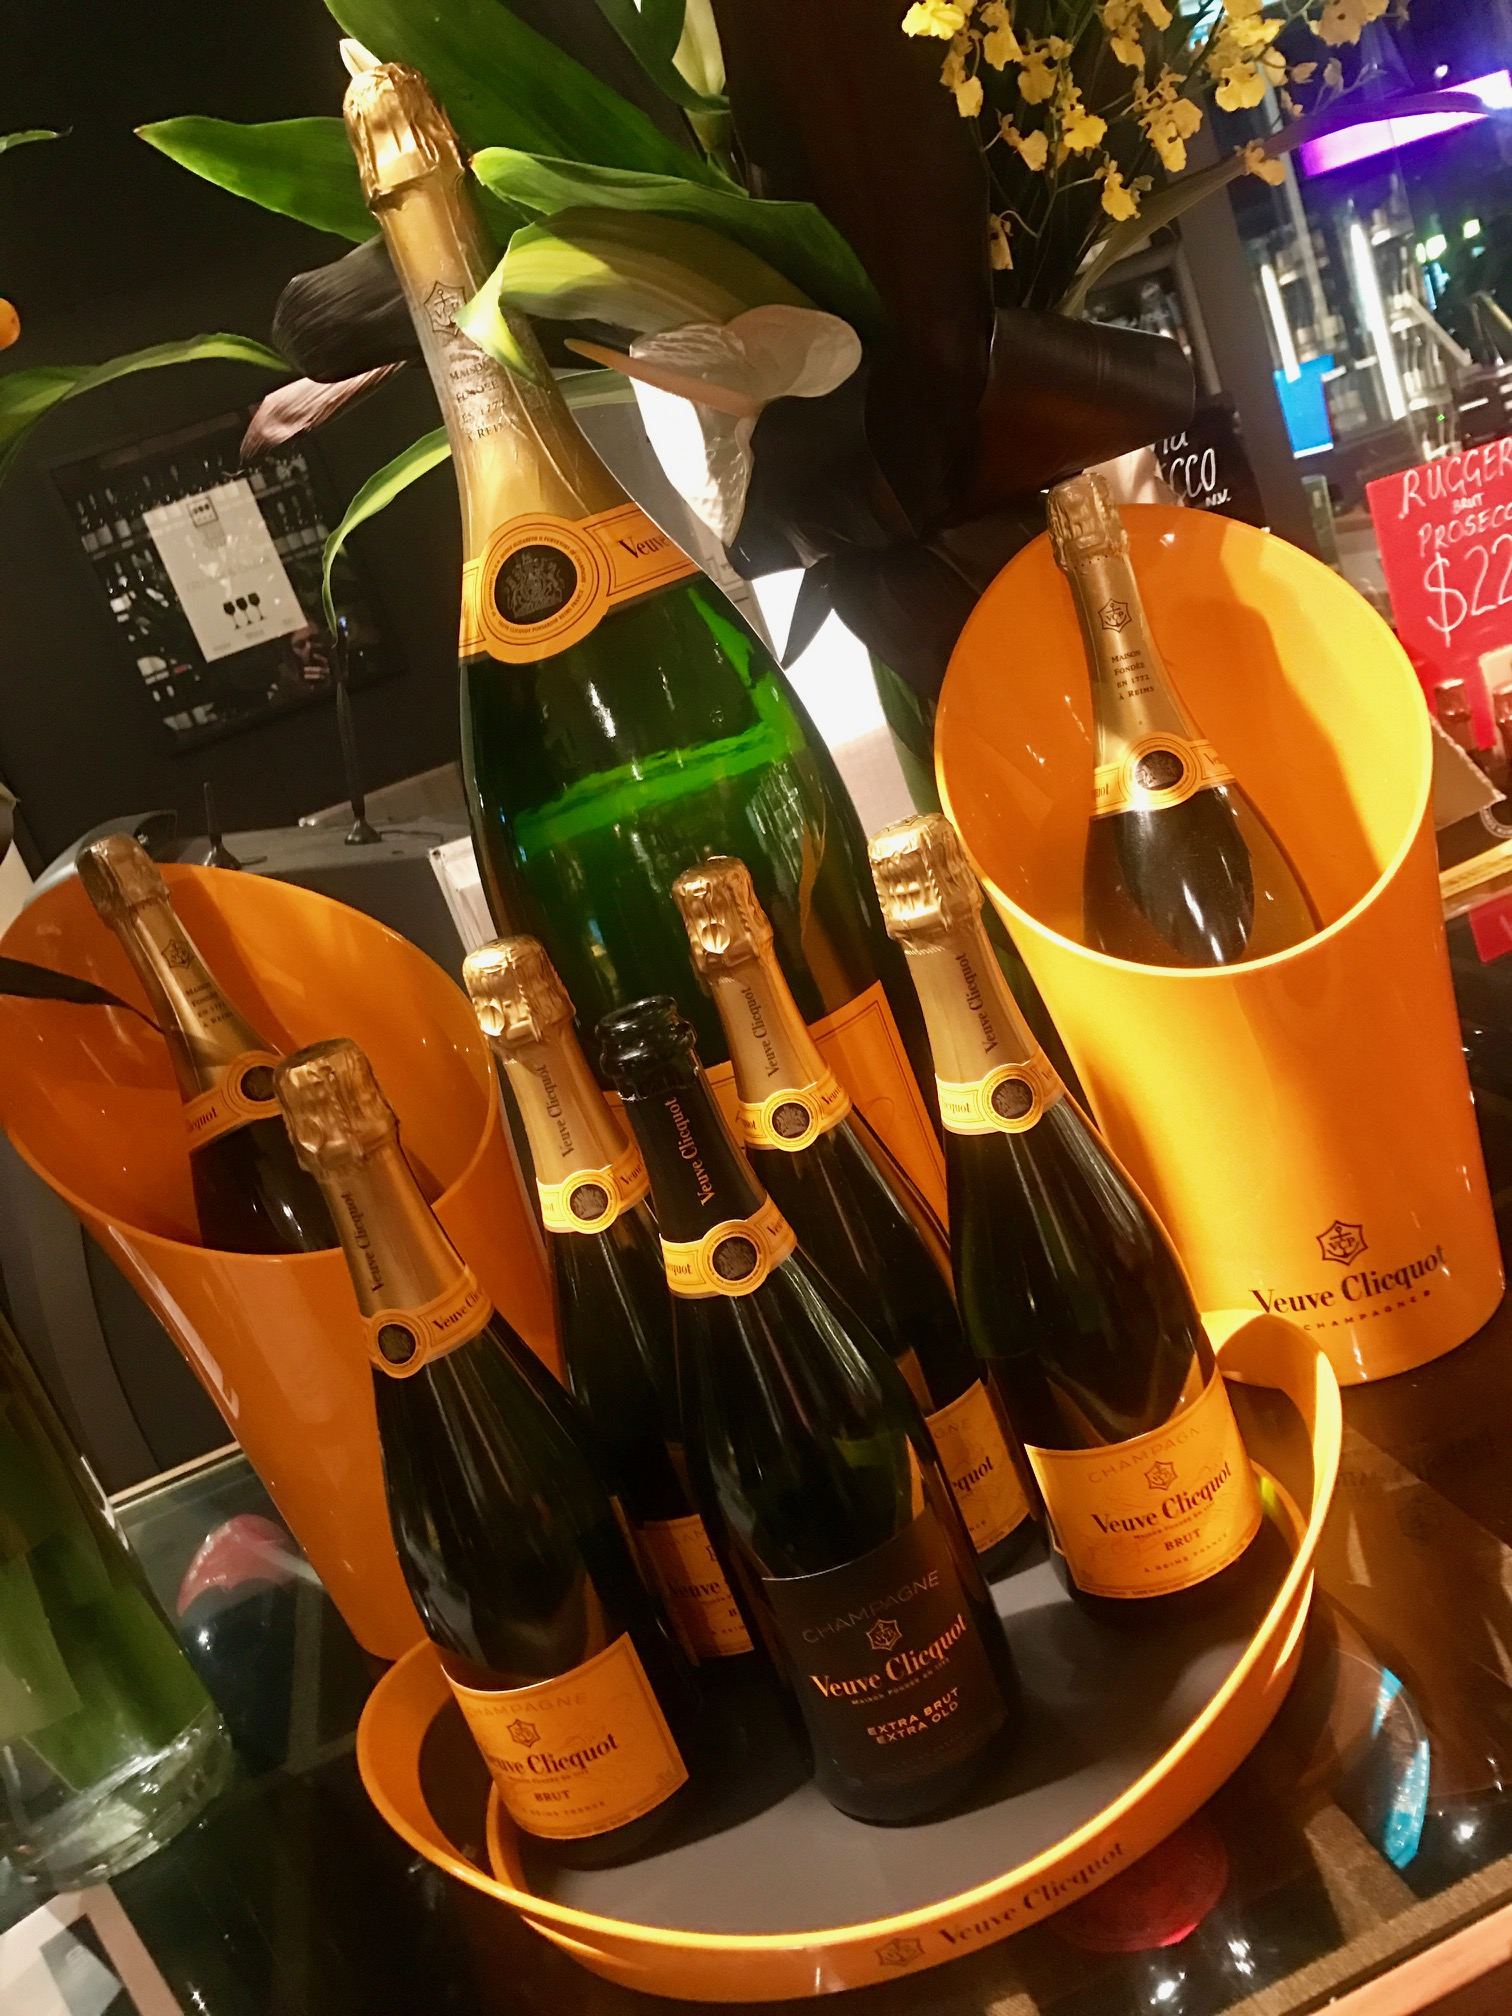 Meet the Maker – Veuve Clicquot